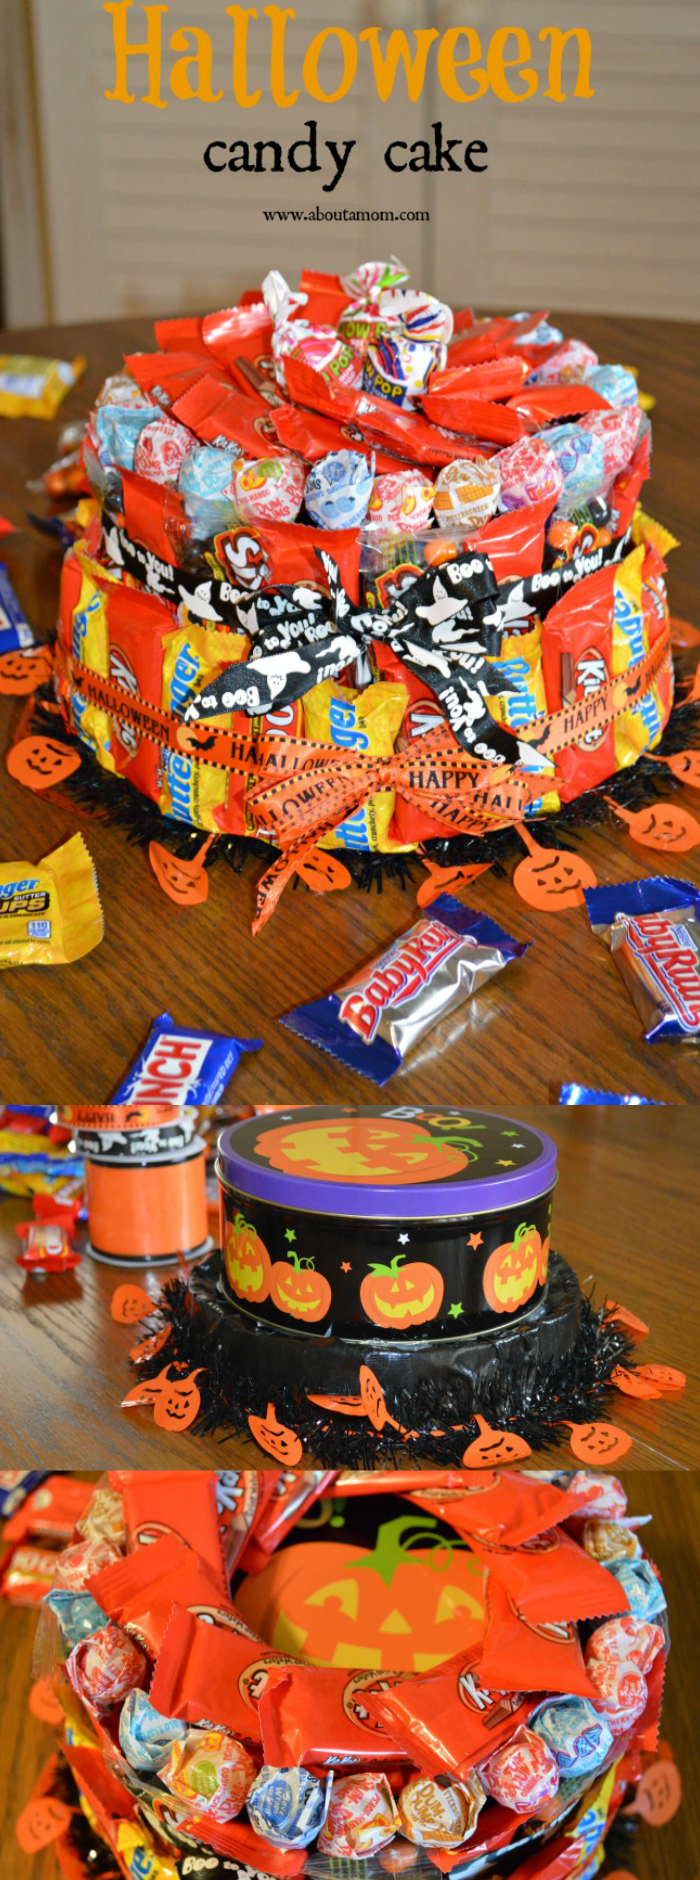 How to make a candy cake for Halloween. It is a fun Halloween gift idea.